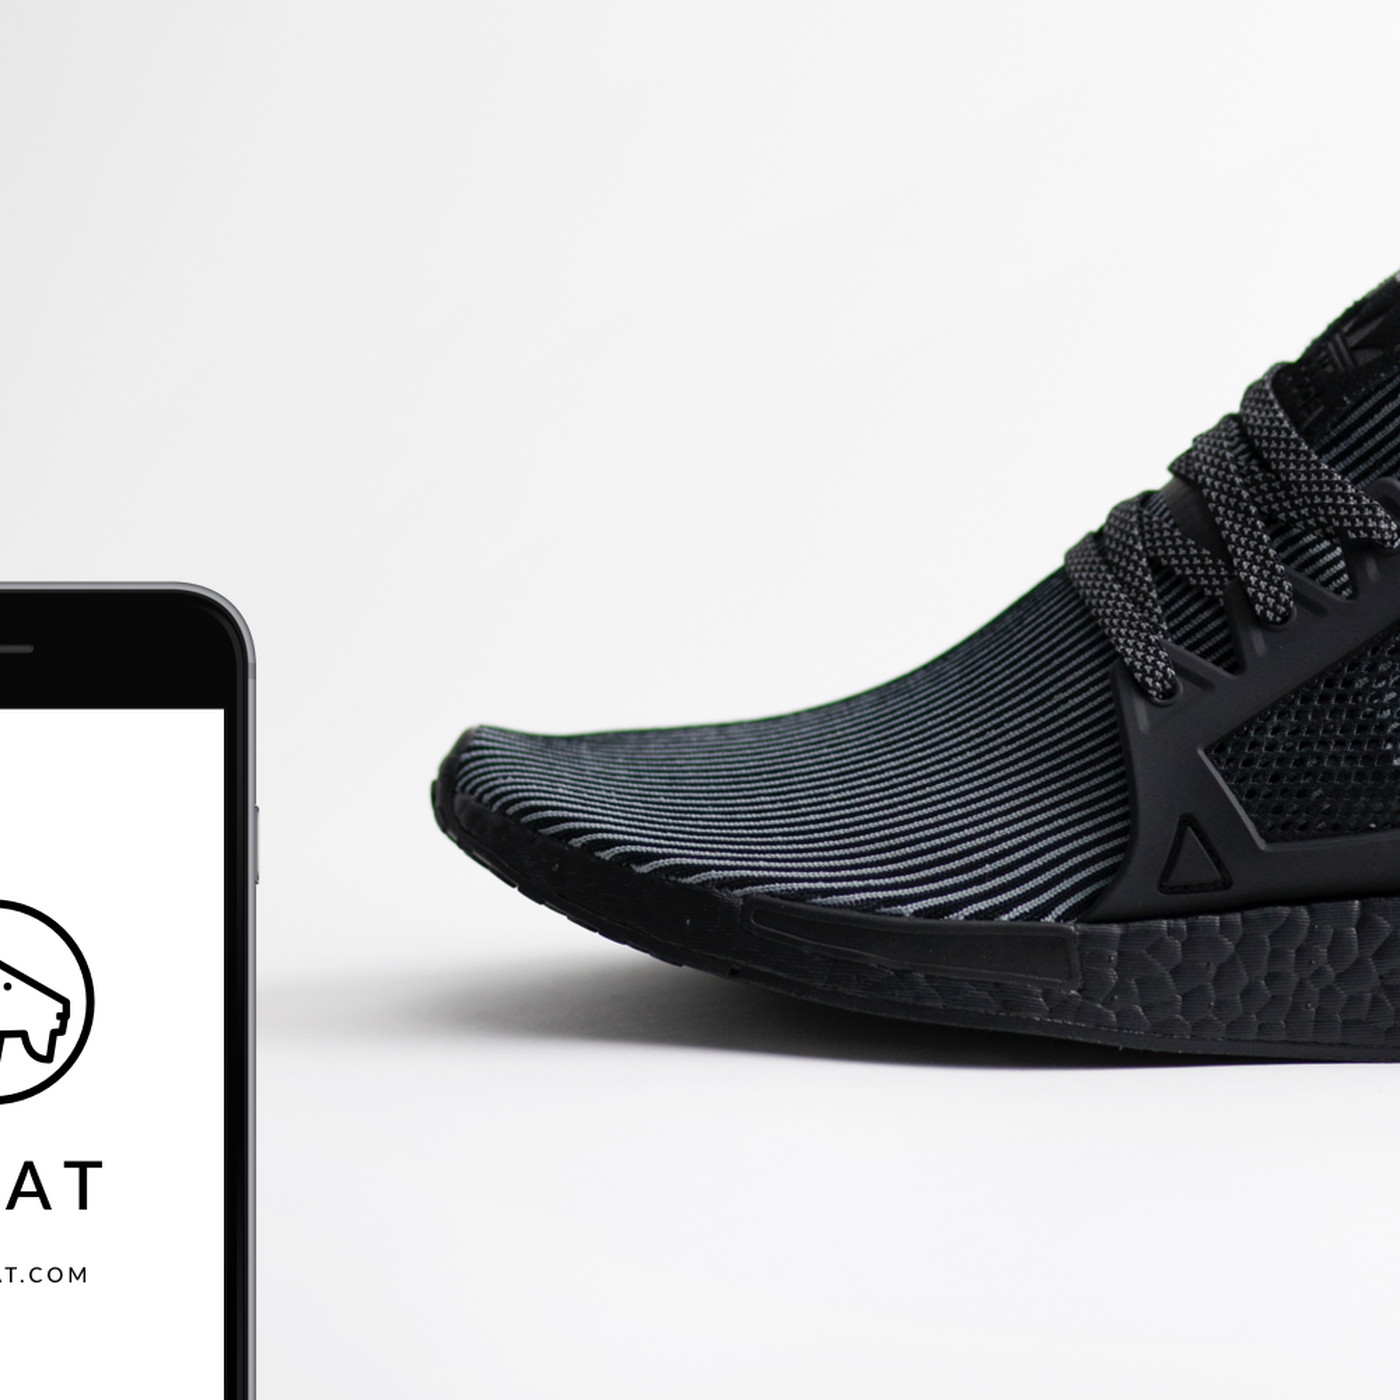 06039a33548 GOAT is a sneaker app that should be dead — but is making millions instead